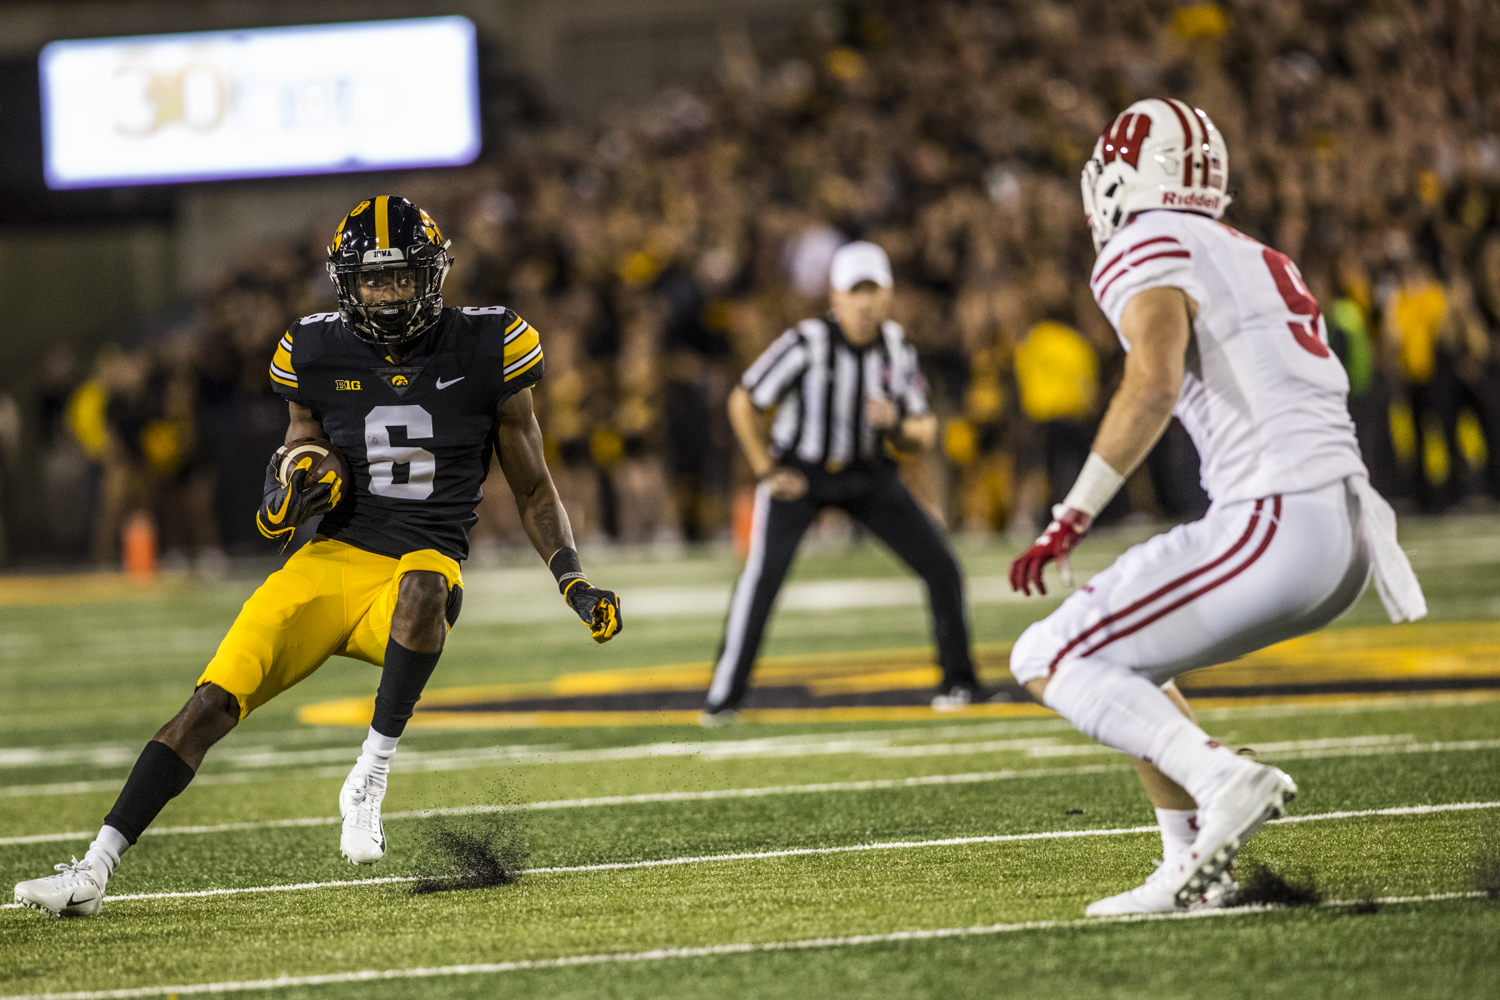 Iowa+wide+receiver+Ihmir+Smith-Marsette+makes+a+cut+during+Iowa%27s+game+against+Wisconsin+at+Kinnick+Stadium+on+Saturday%2C+September+22%2C+2018.+The+Badgers+defeated+the+Hawkeyes+28-17.